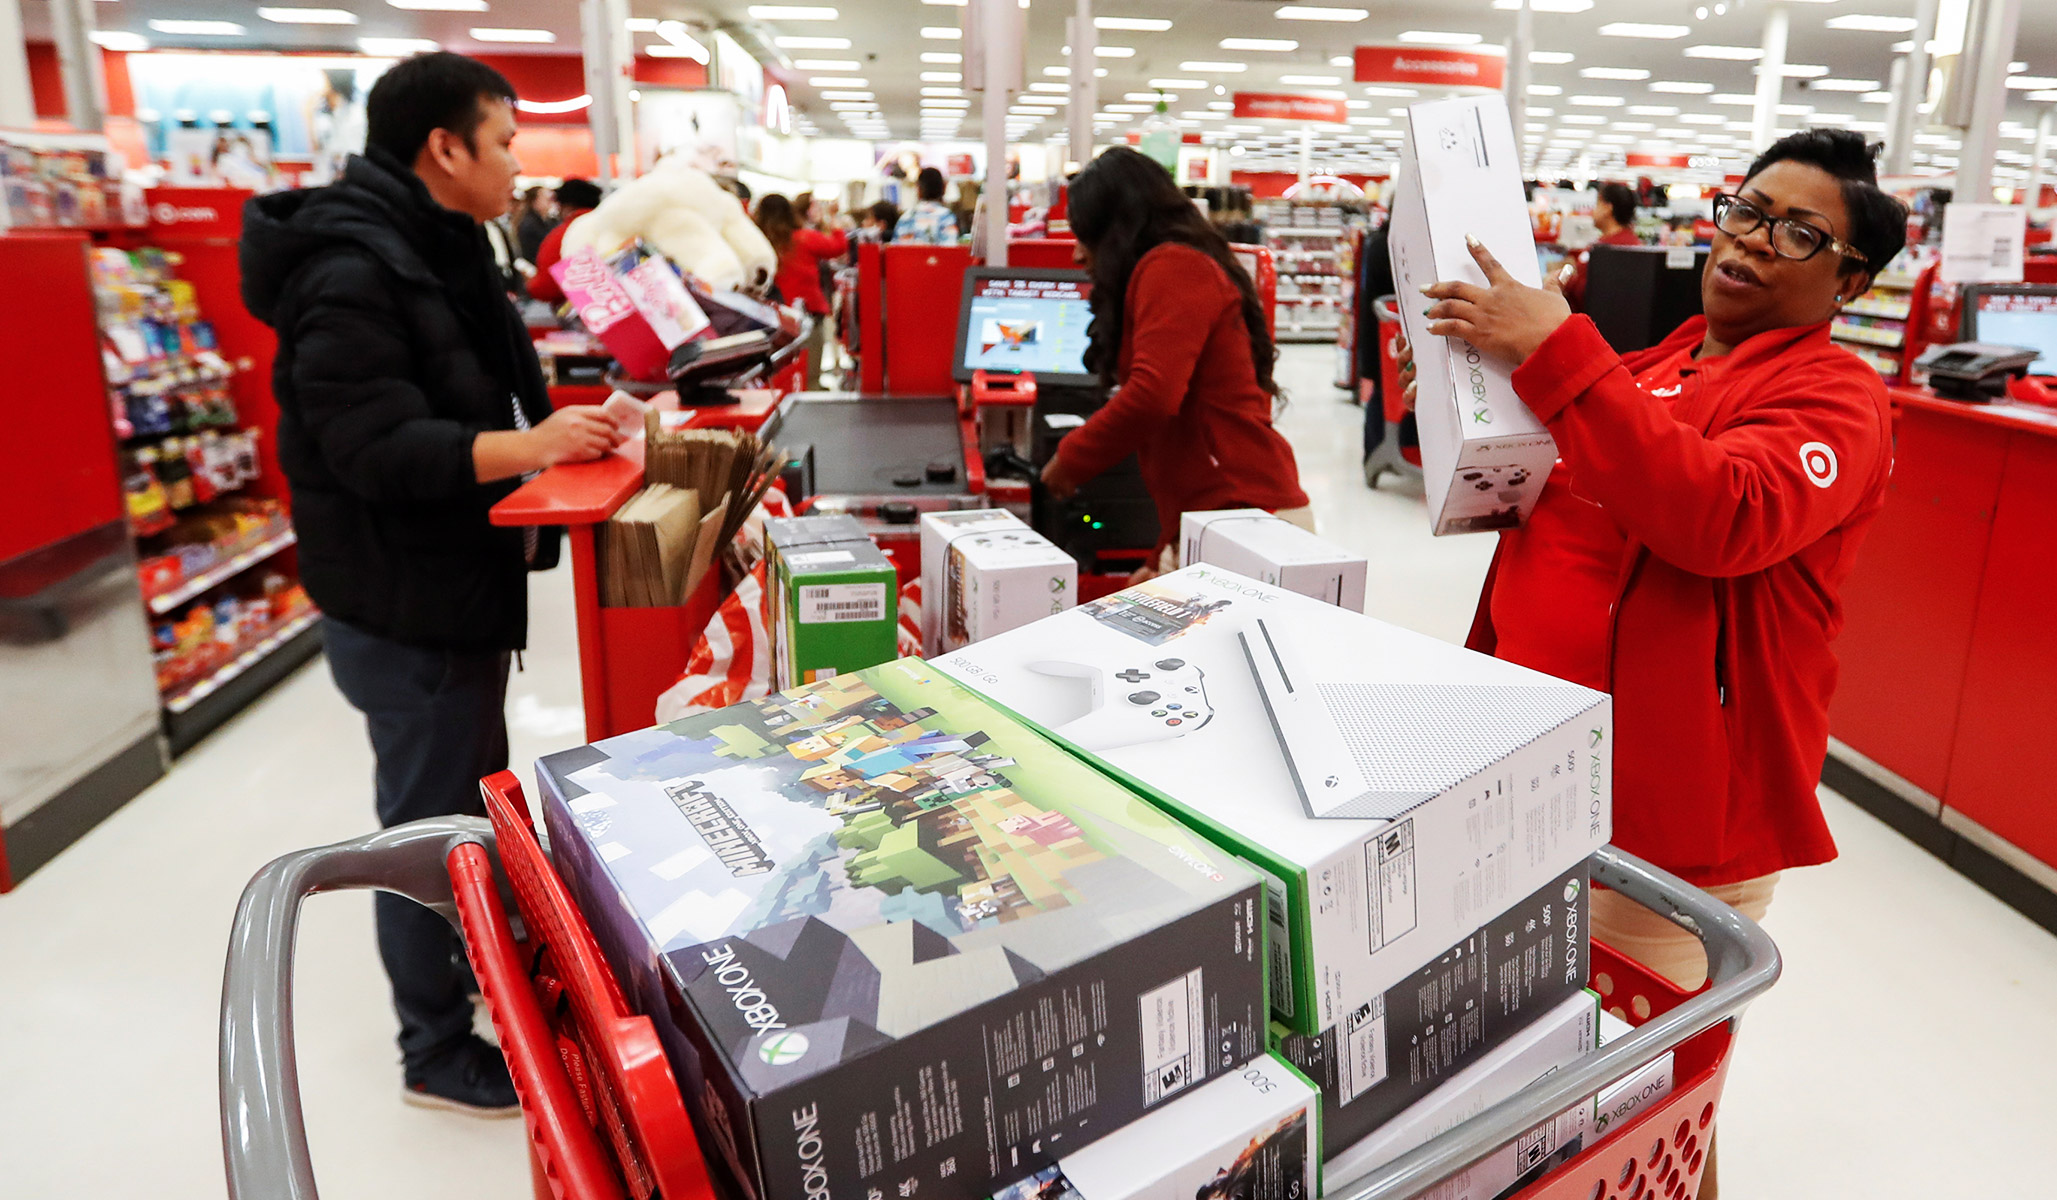 Target Cuts Workers' Hours after Vowing to Raise Minimum Wage to $15 By 2020